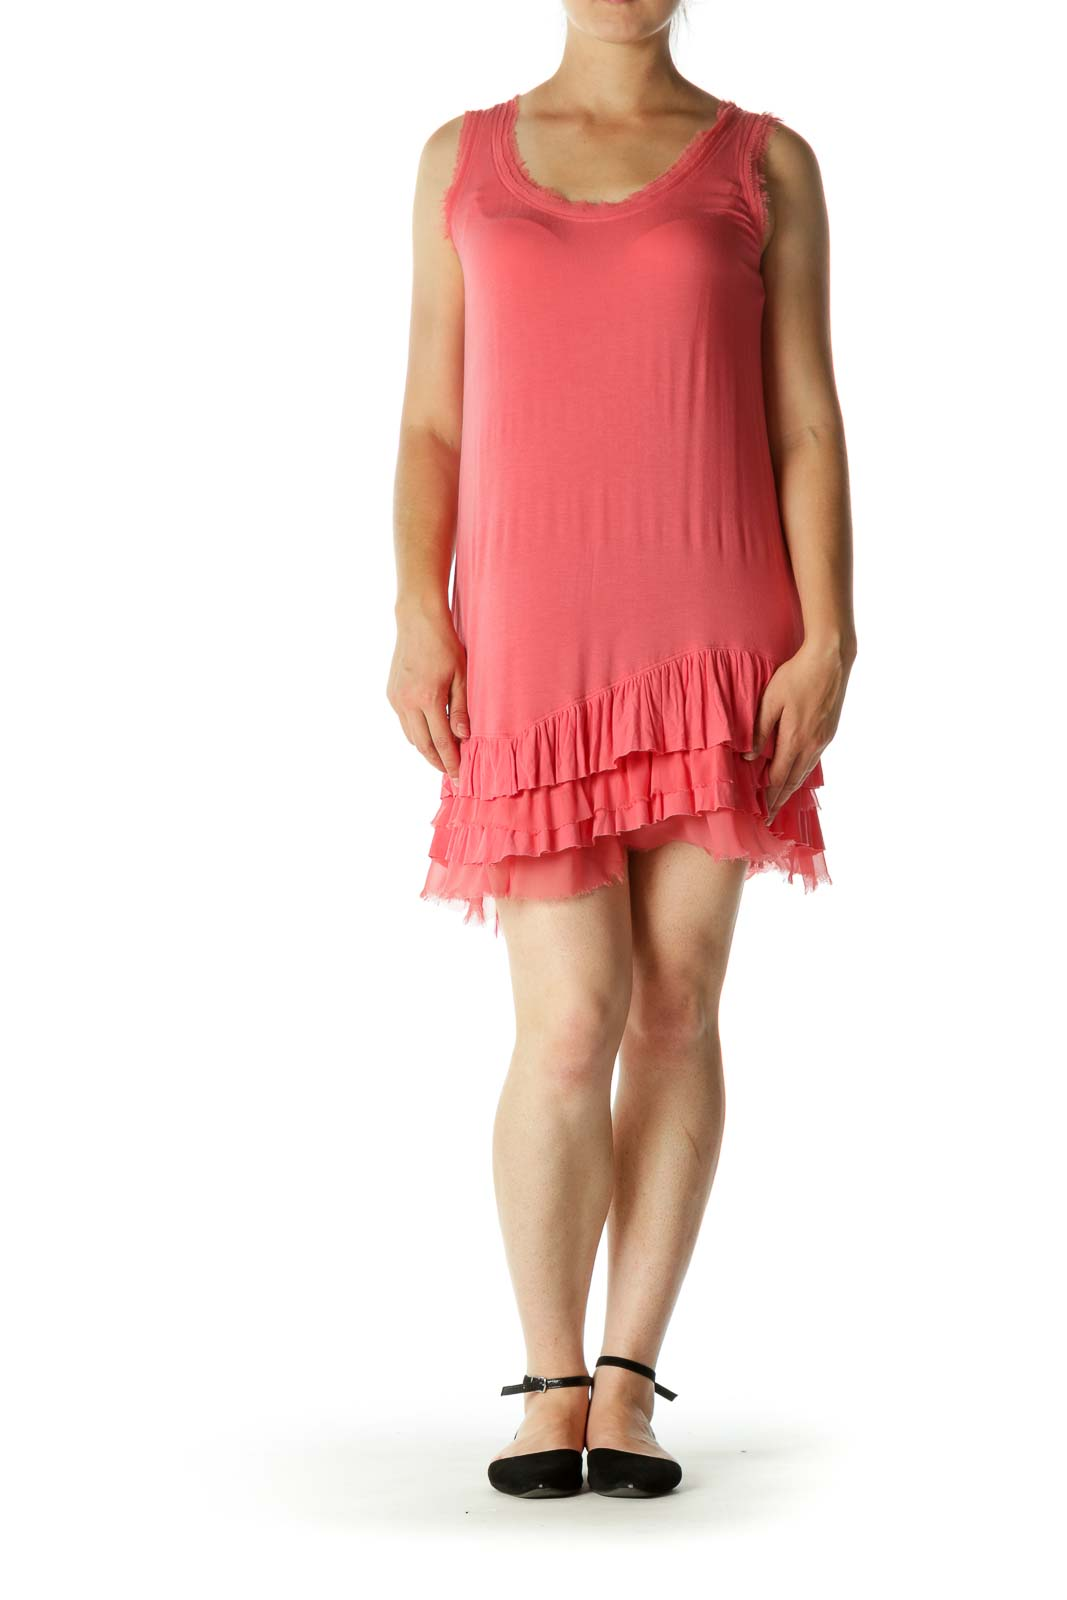 Coral Pink Round Neck Raw Hem Trim and Flare Detail Jersey Dress